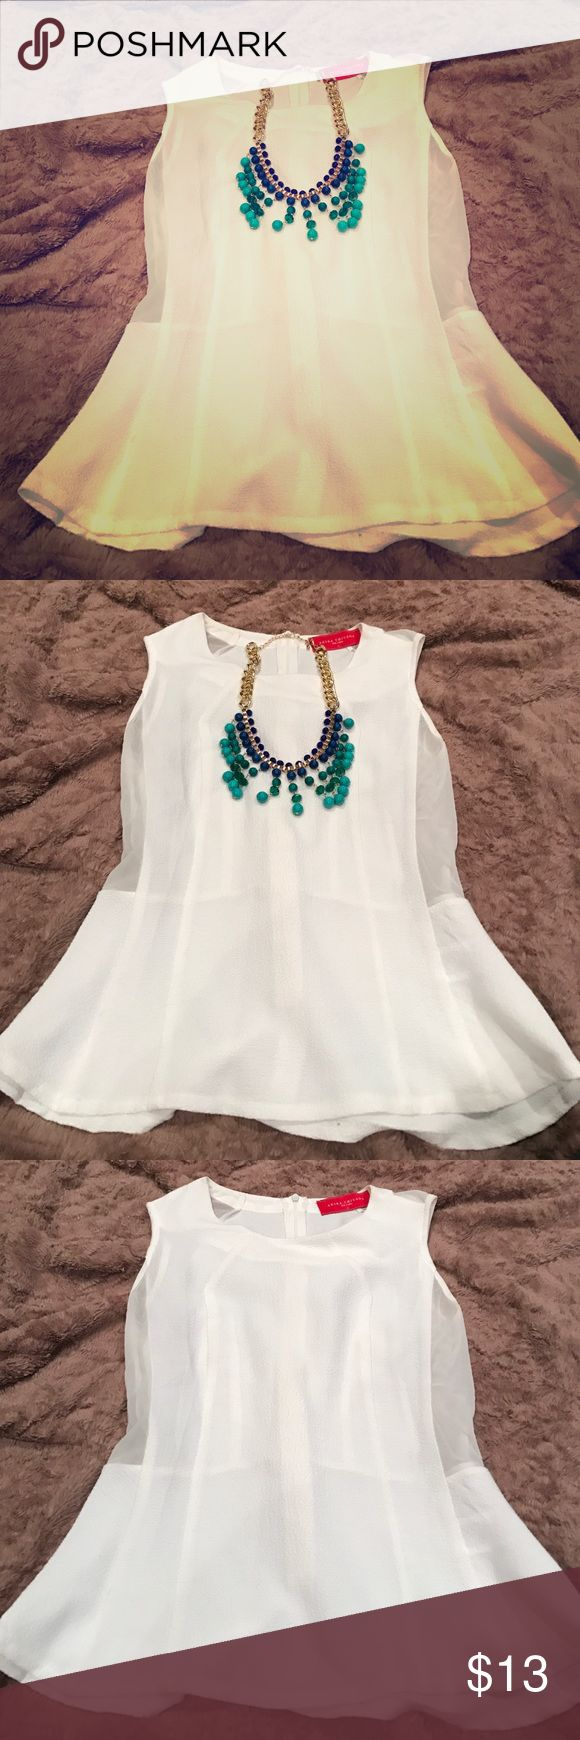 White peplum top and blue statement necklace. 2 for 1!! Sexy white peplum with sheer paneling on the sides. Zippered back.  Paired with this gorgeous blue statement necklace! AKIRA Tops Tank Tops